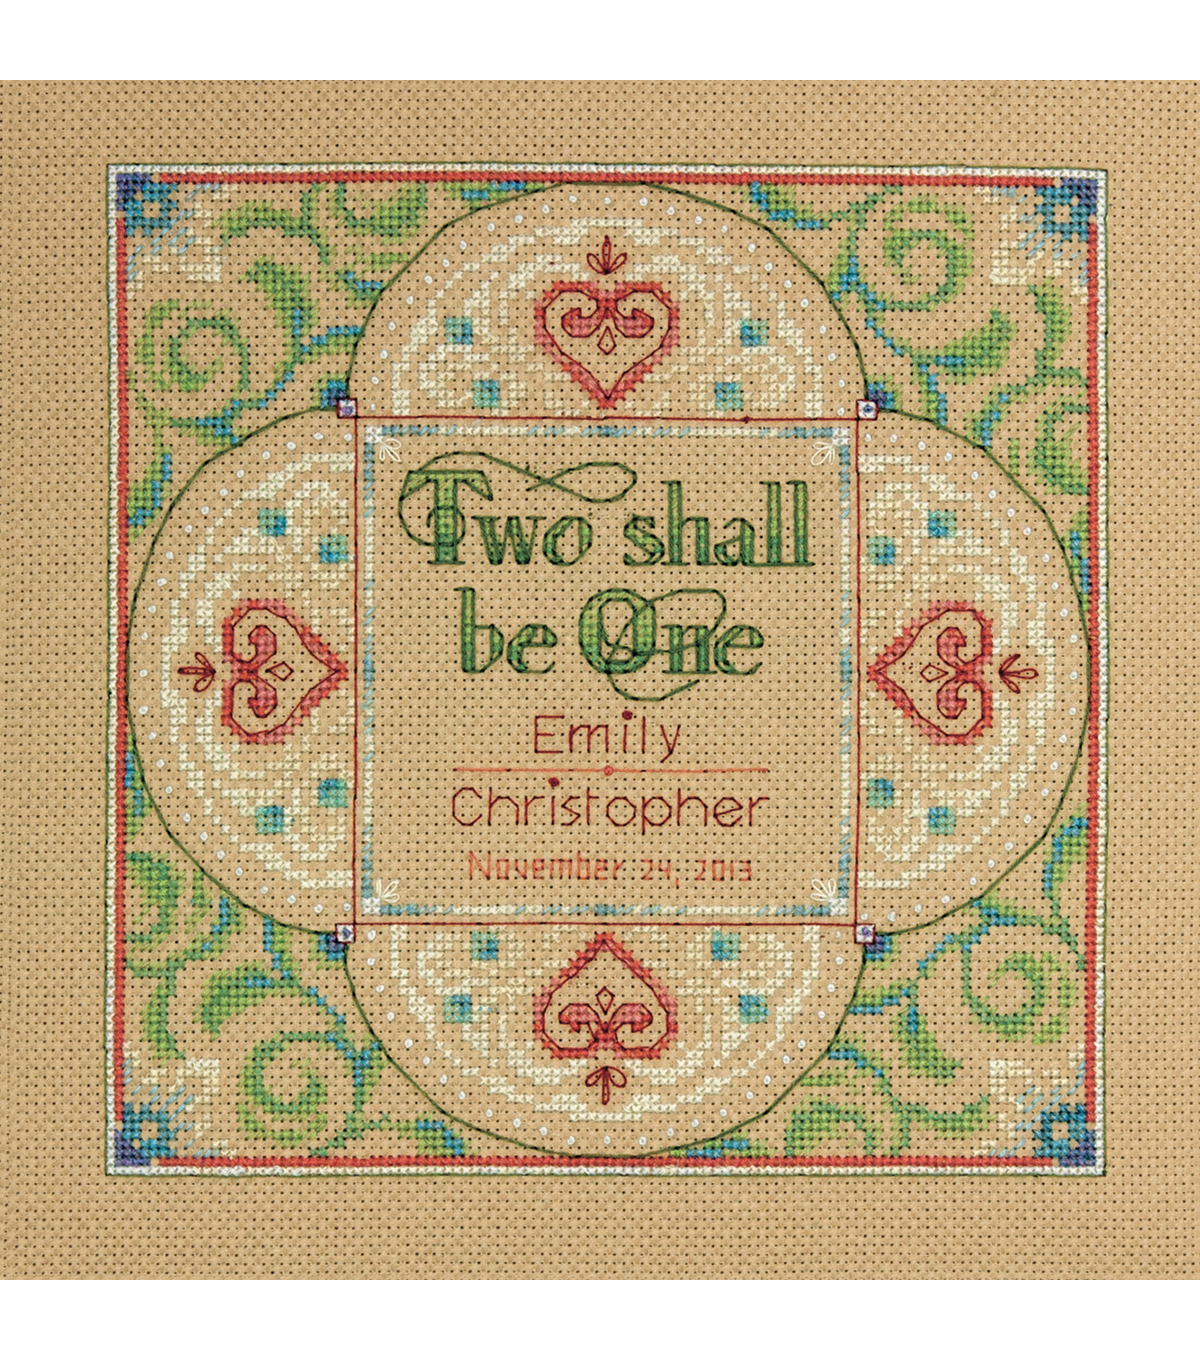 "Two As One Wedding Record Counted Cross Stitch Kit-10""X10"" 14 Count"